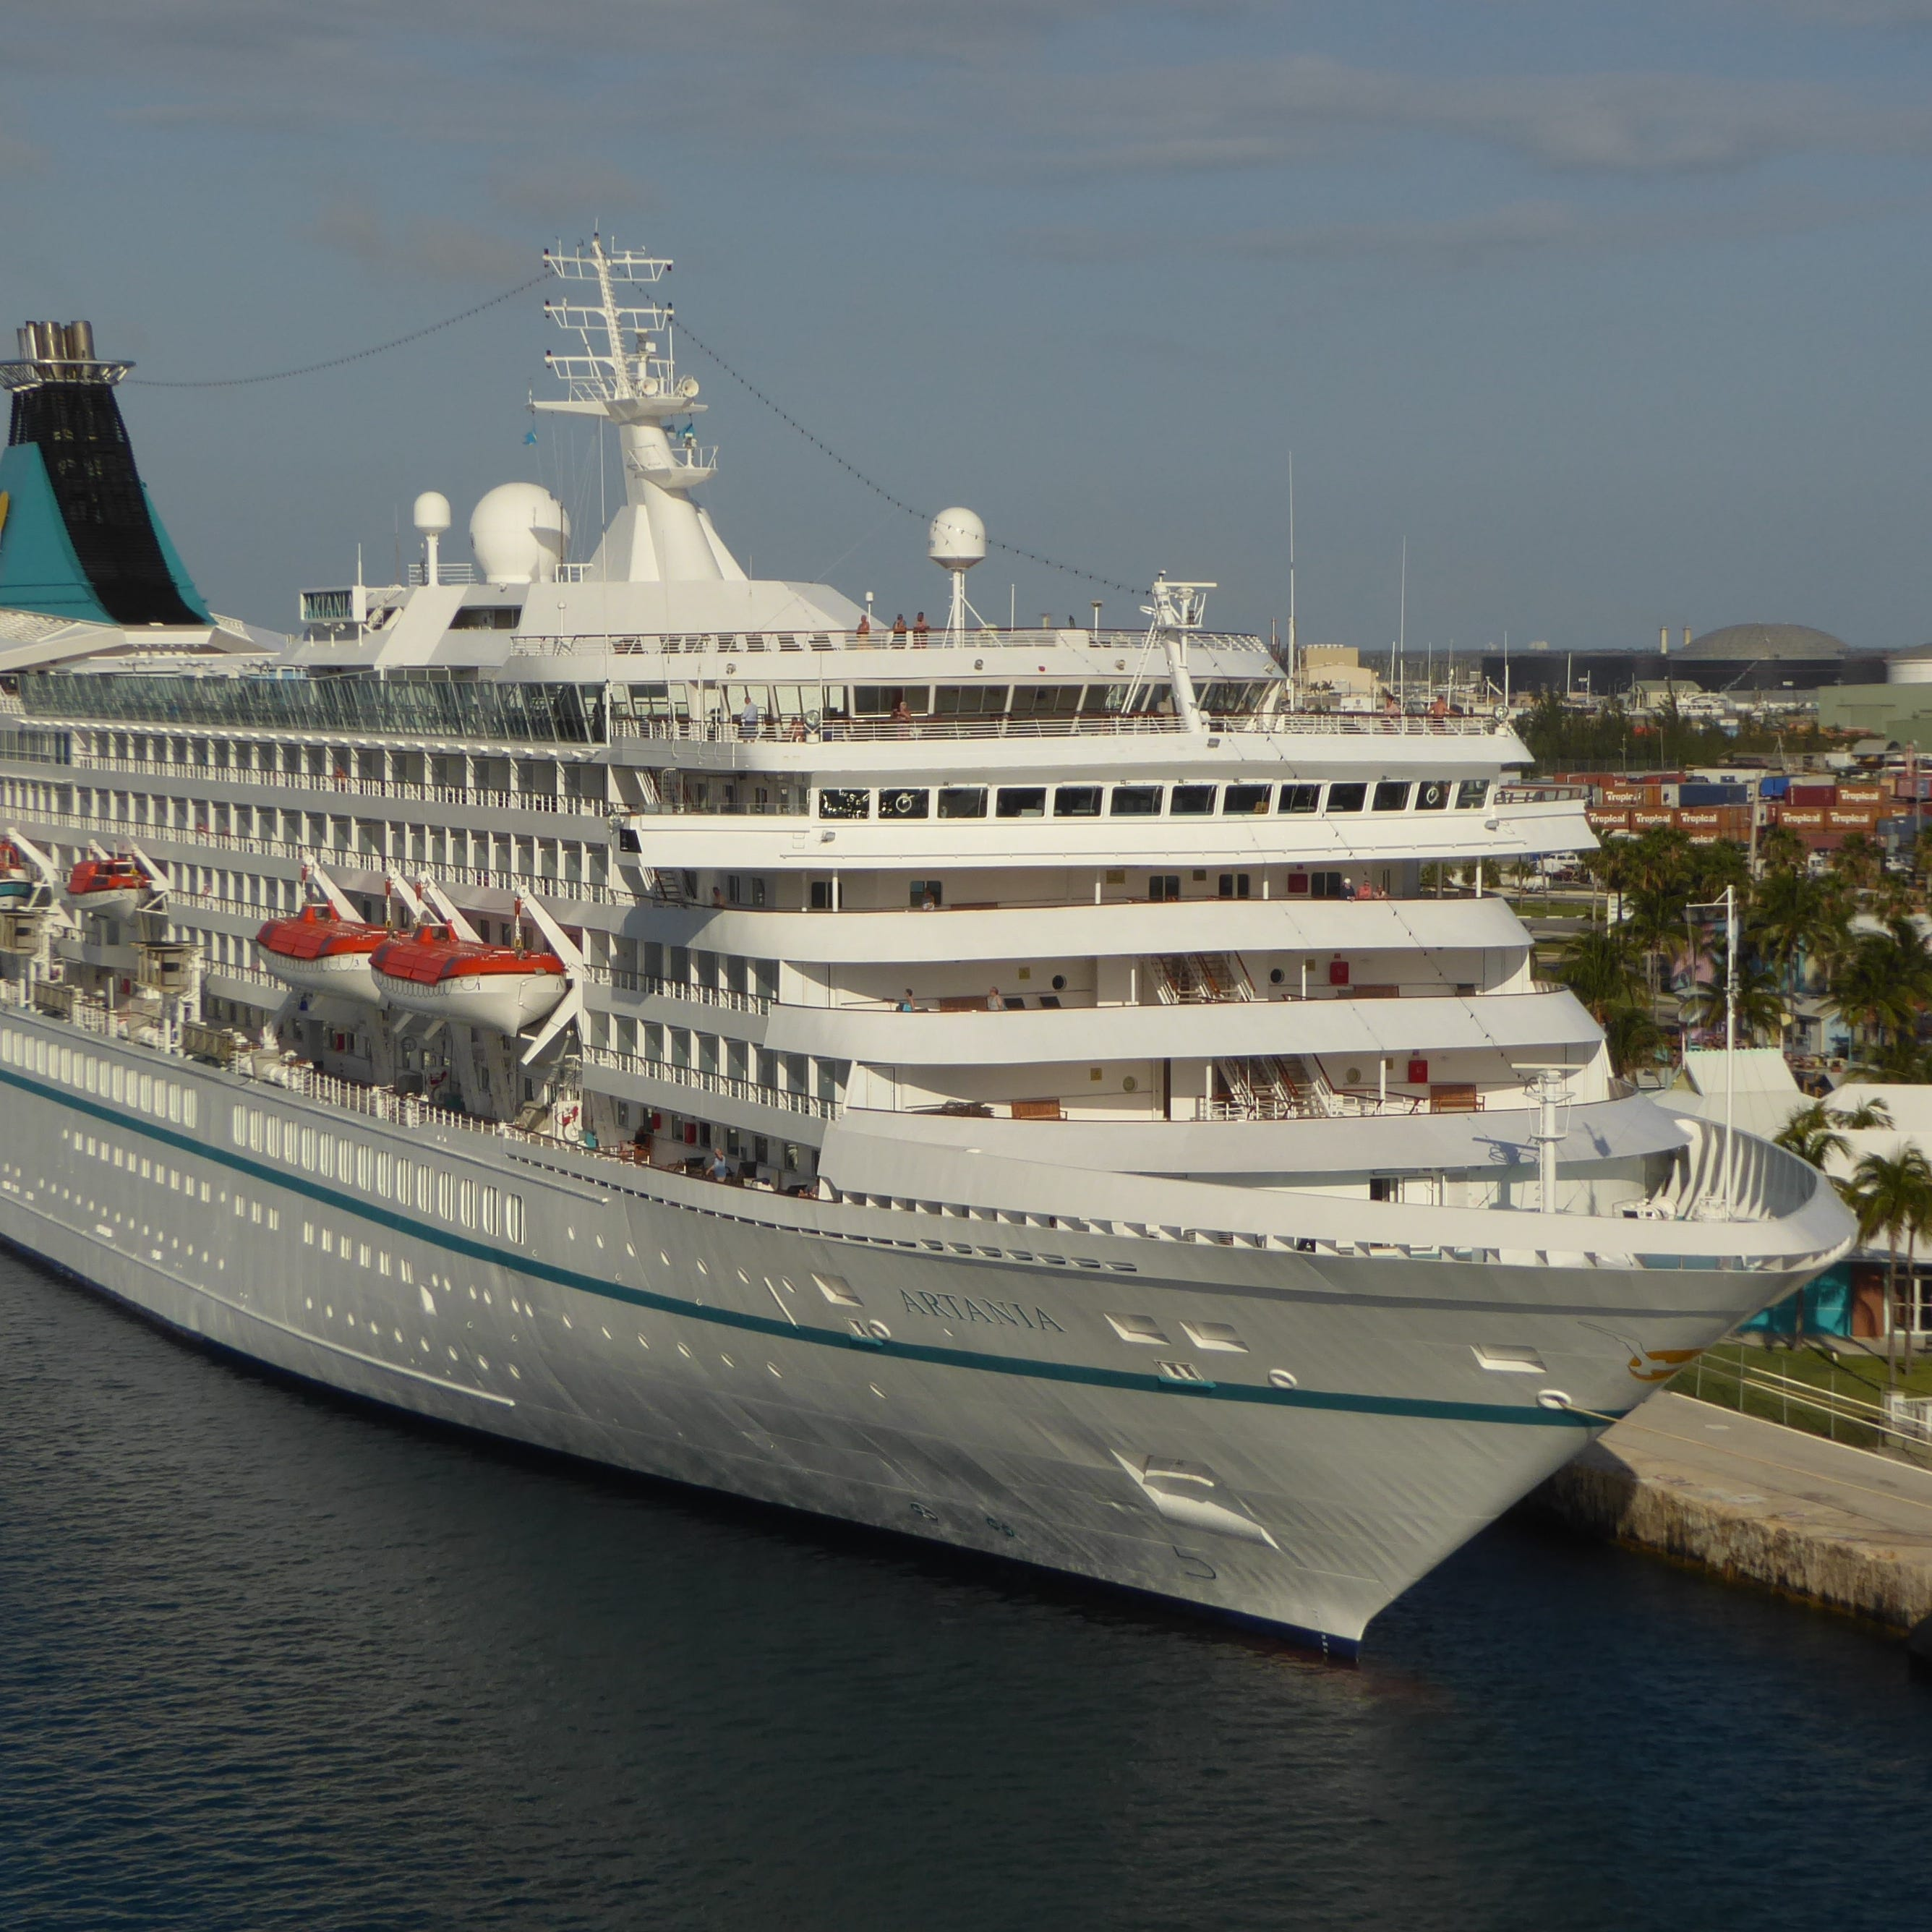 Phoenix Reisen's 1,200-guest Artania is now one of the oldest active cruise ships in the world but was so advanced for its time when built (as Princess Cruises' first Royal Princess) that it fits in nicely with today's cruise fleet.